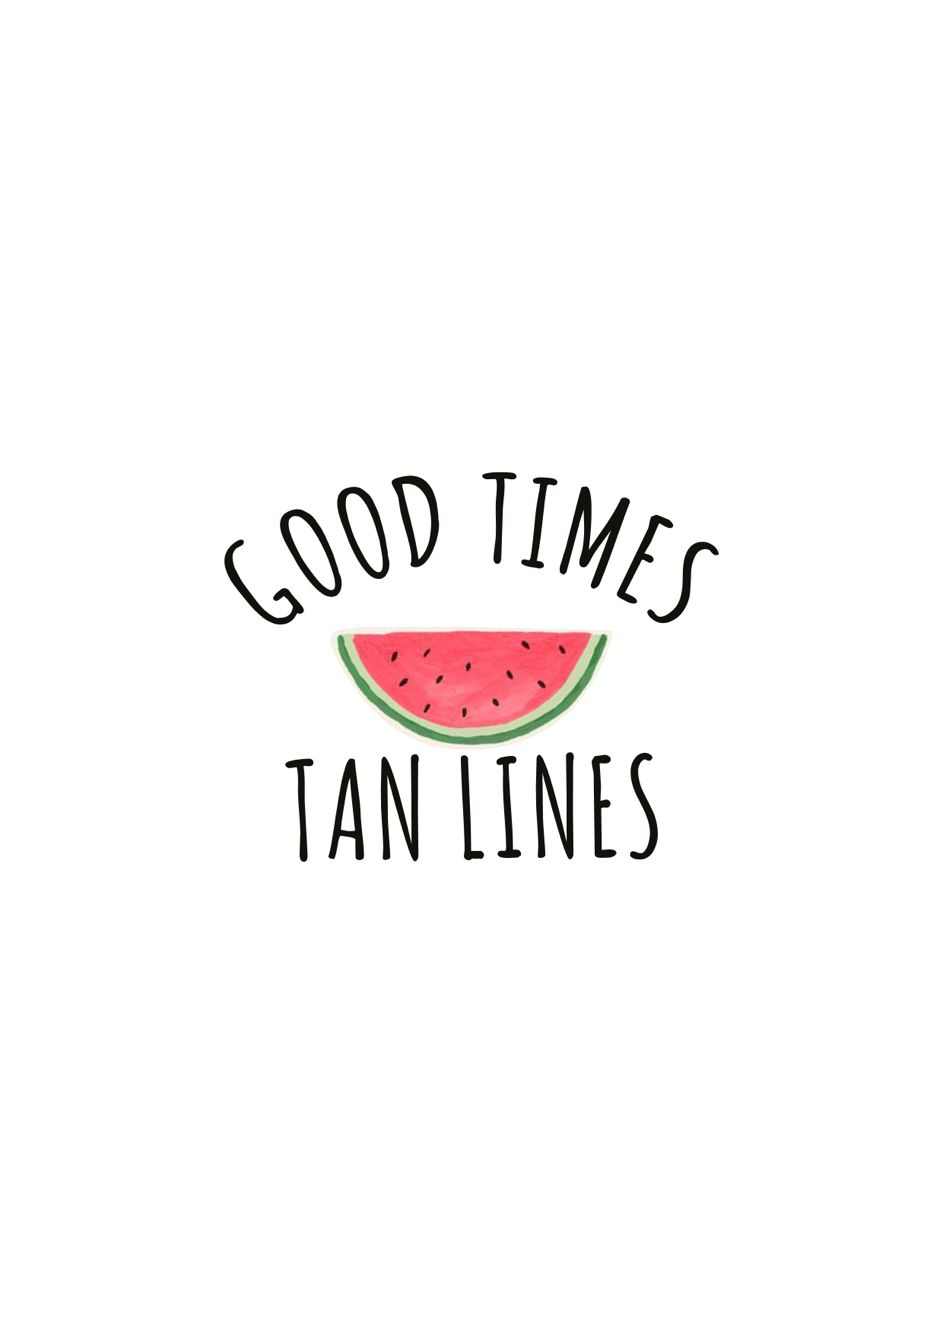 Good times and tan lines!